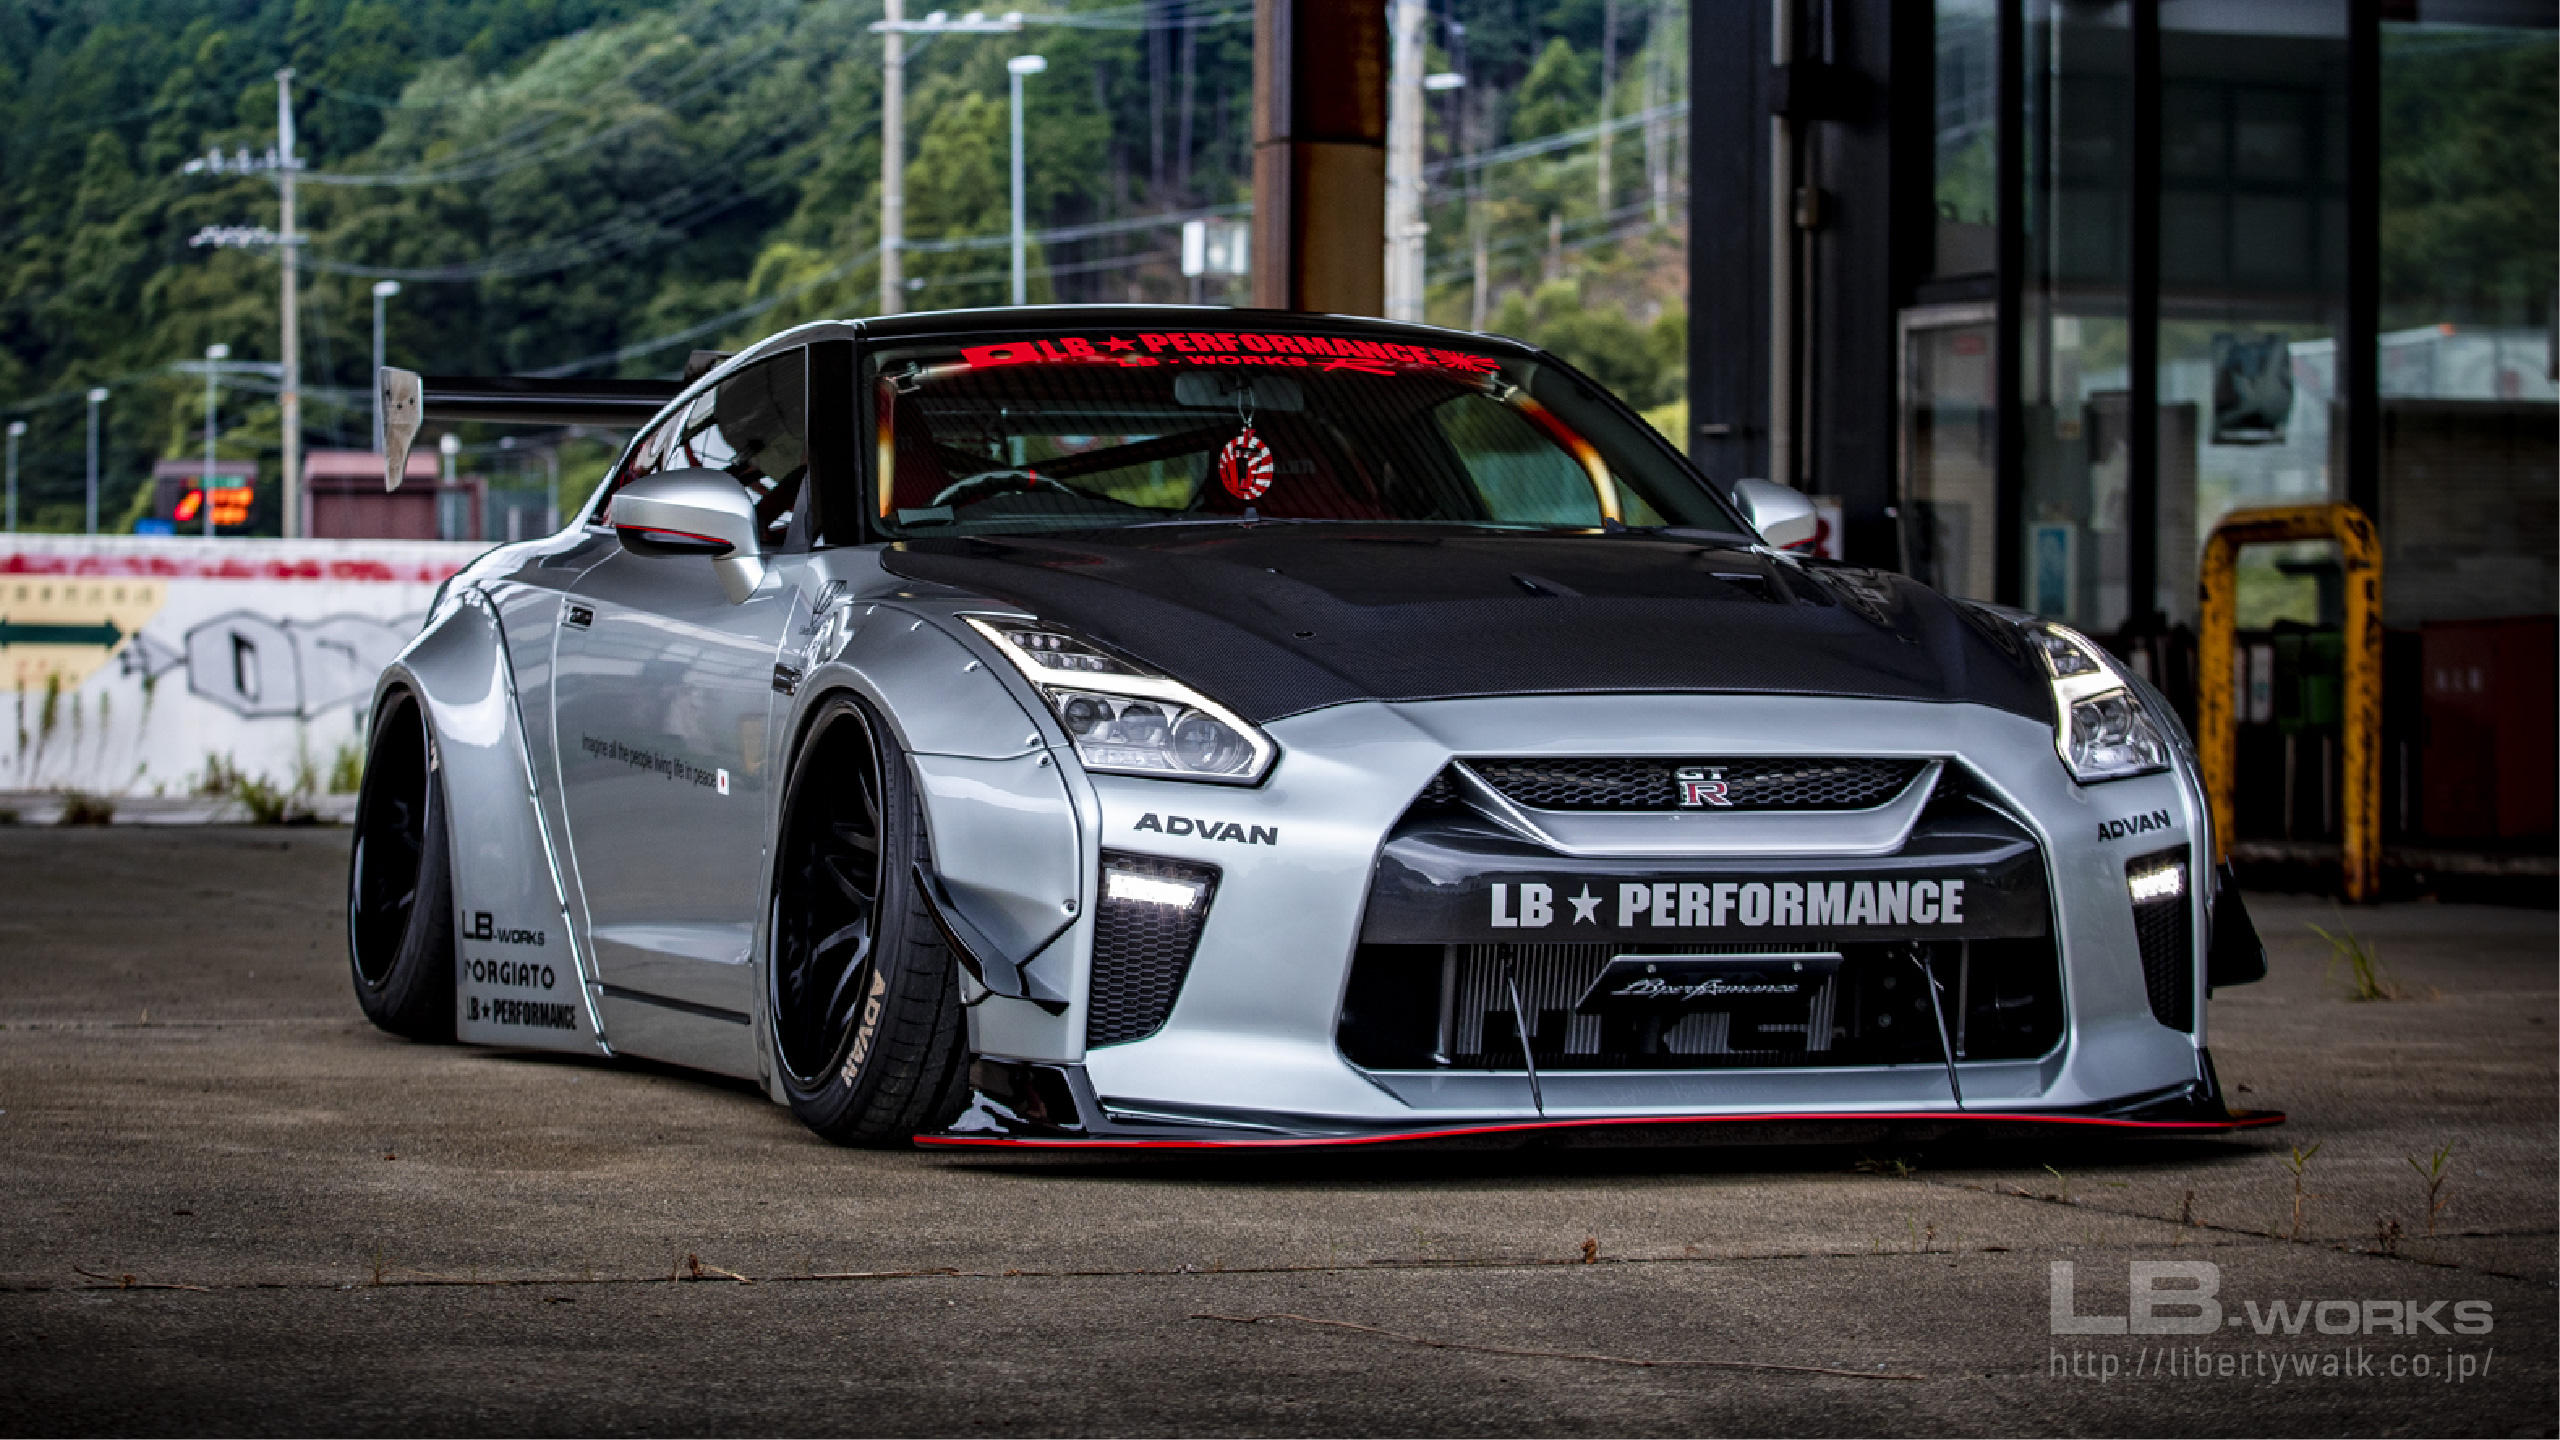 13-80 LB-WORKS NISSAN GT-R R35 type 1.5